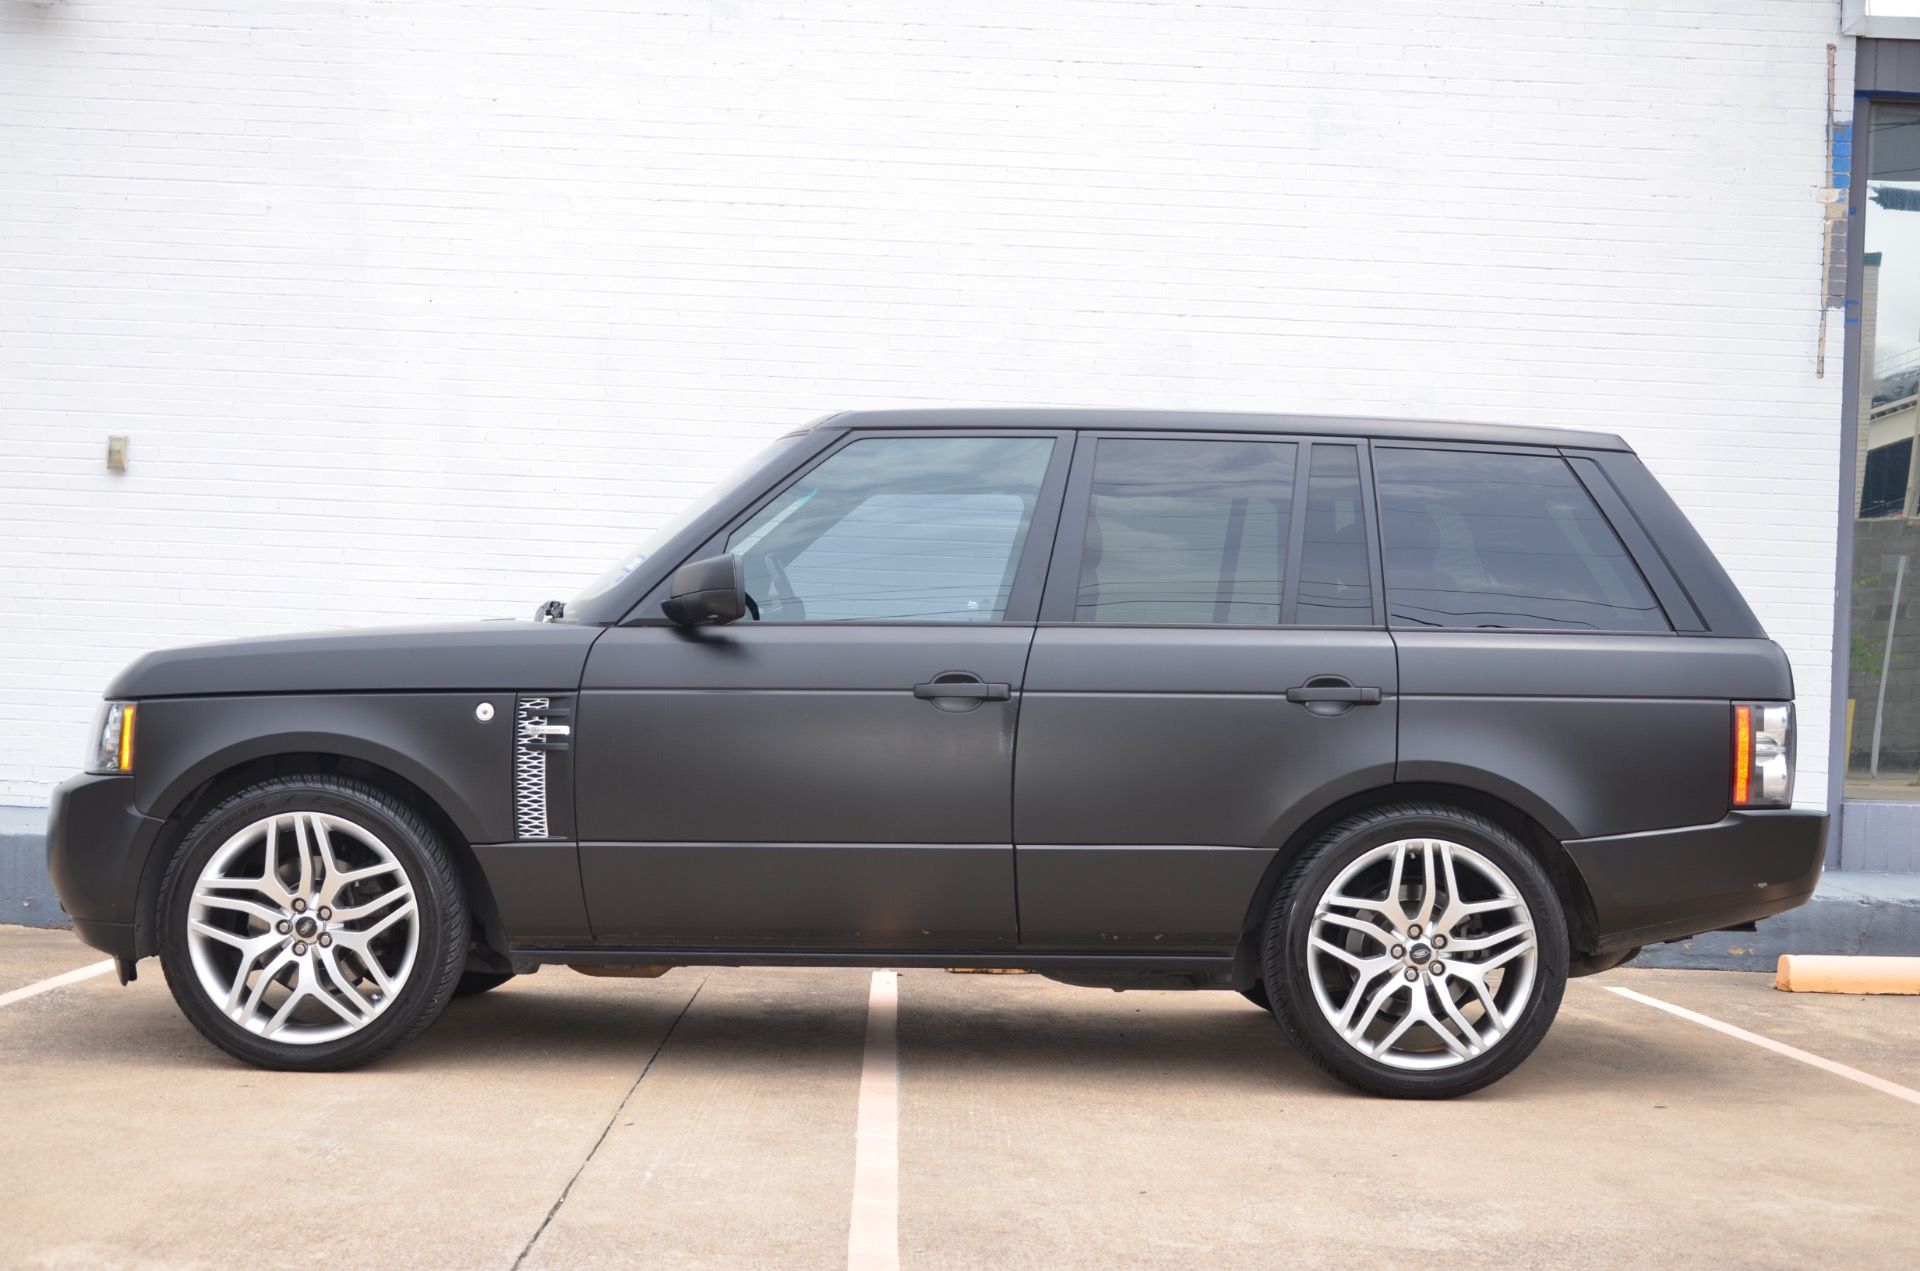 2010 Land Rover Range Rover HSE LUX Stock 1ORRHSE for sale near